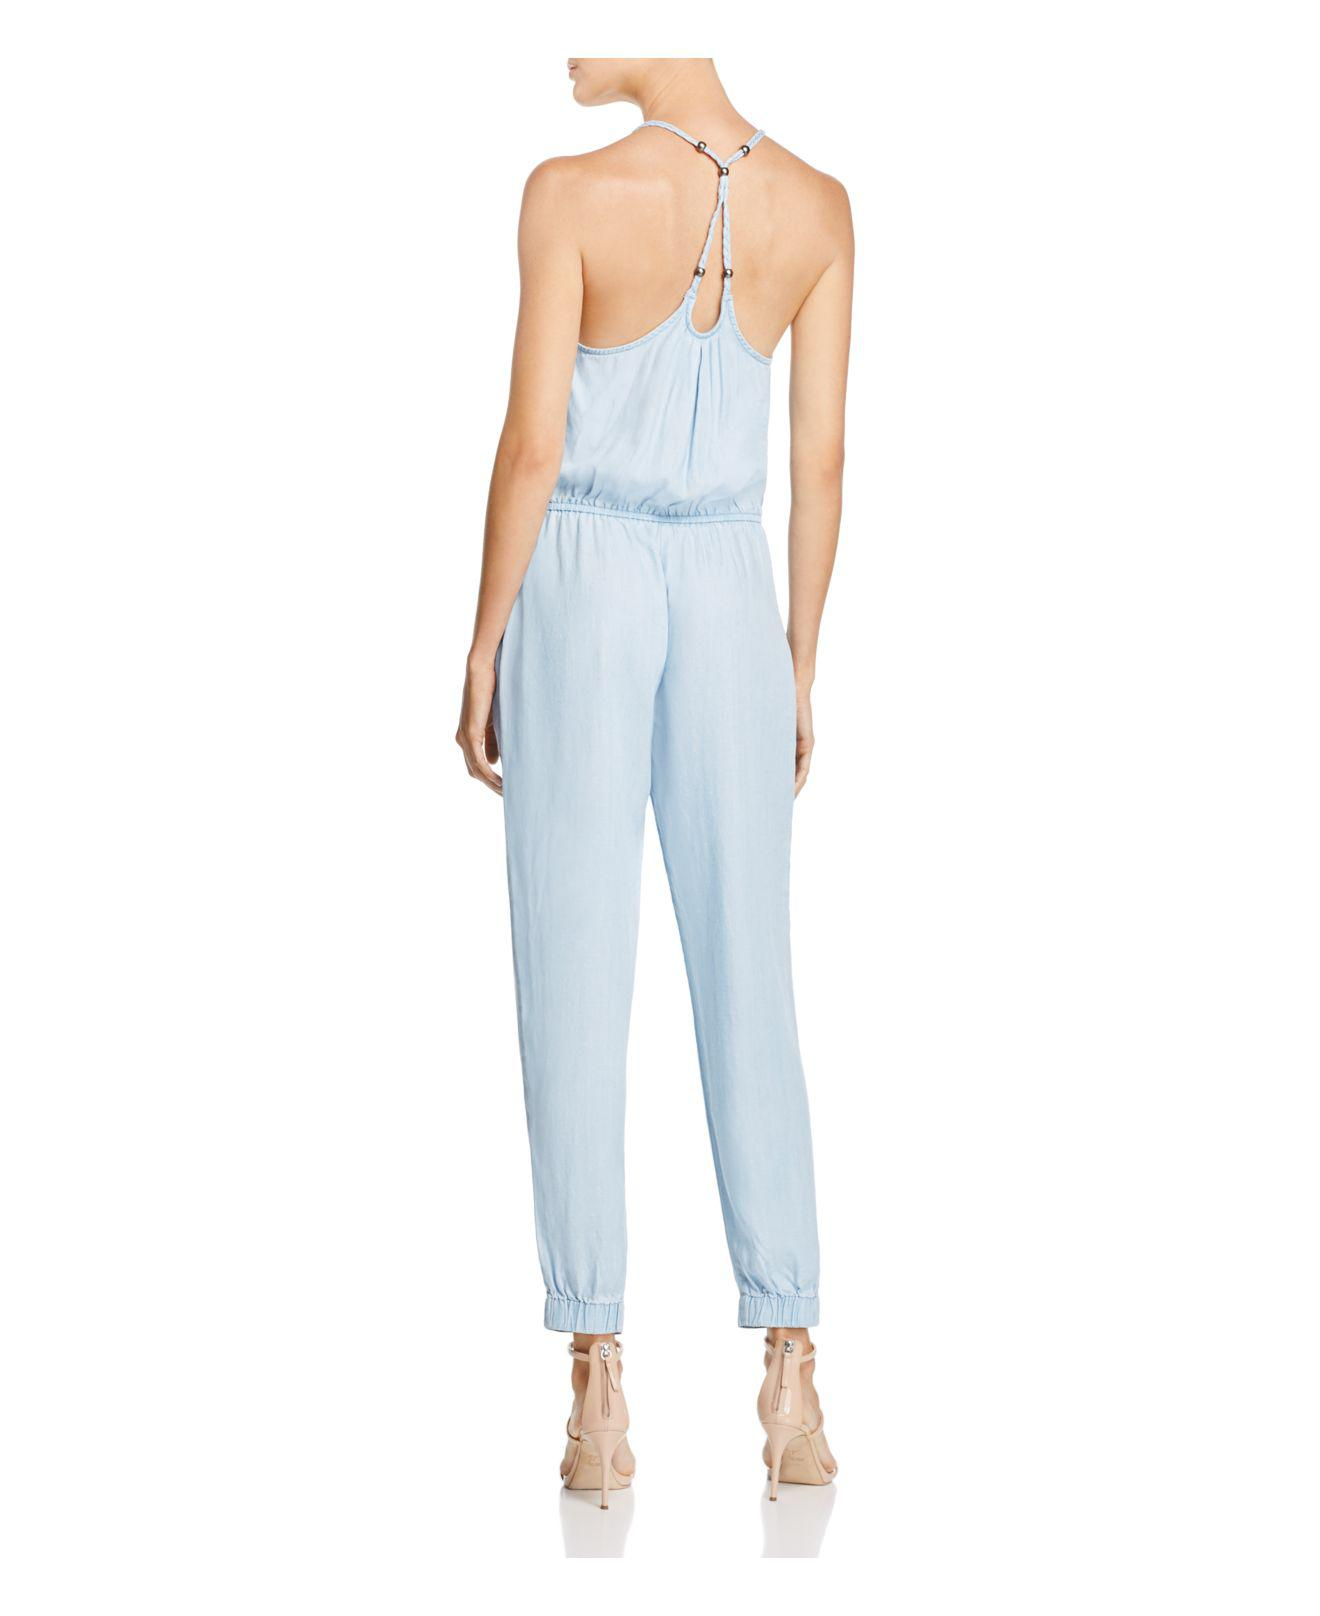 b3d1af27469 Lyst - Guess Chambray Jumpsuit in Blue